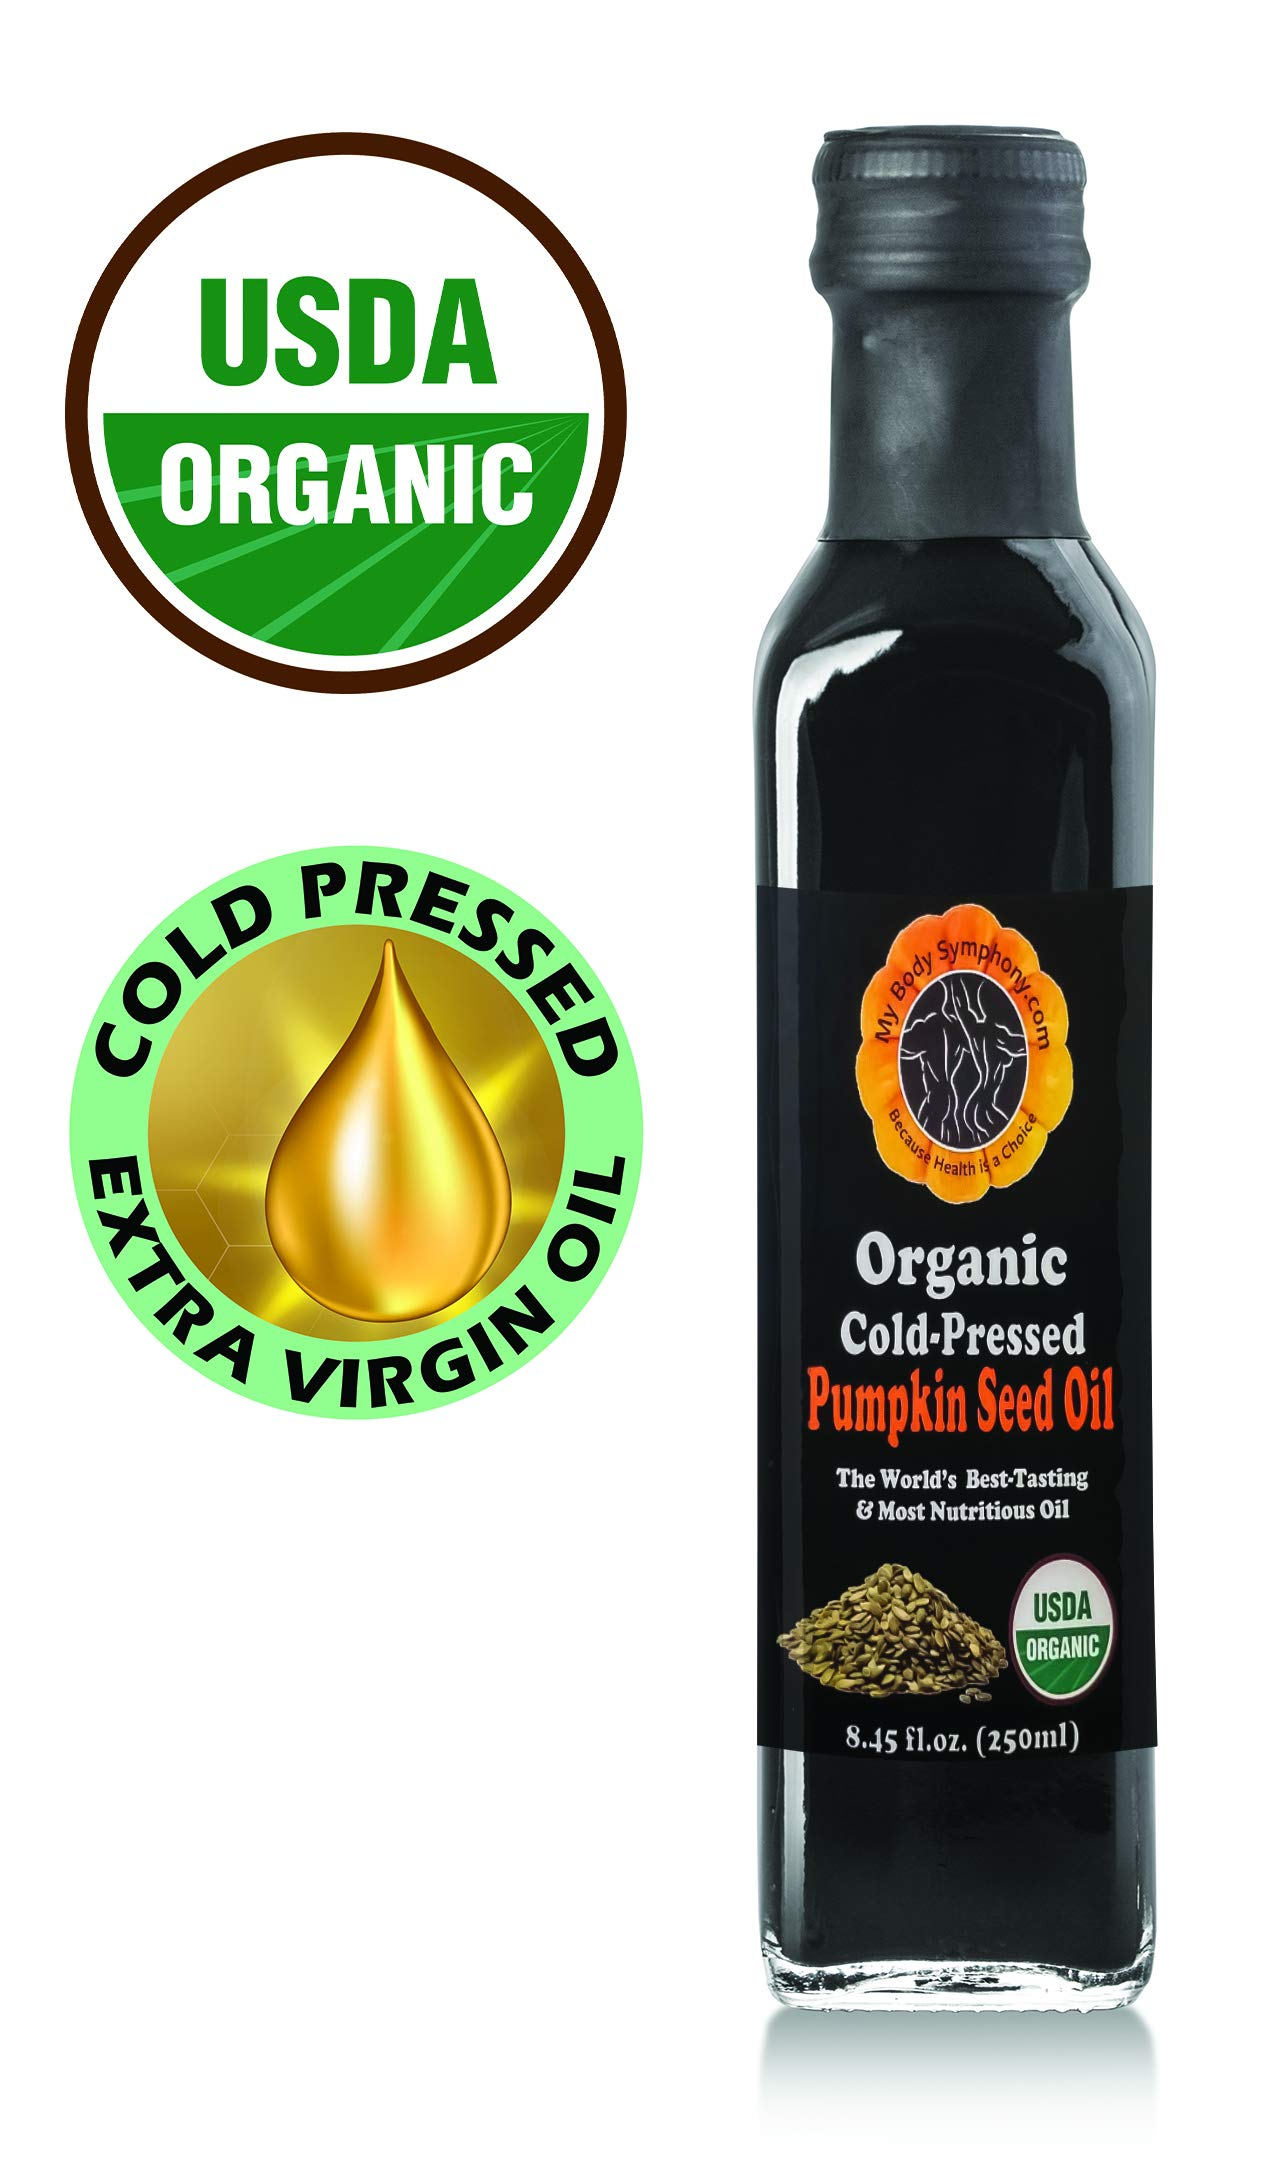 Organic PUMPKIN SEED OIL - Cold Pressed in Our US Facility | Unfiltered | Unrefined - 8 oz. Protective Glass Bottle | Highest Quality 100% Pure Dressing and Cooking Oil (moderate heat) by Body Symphony